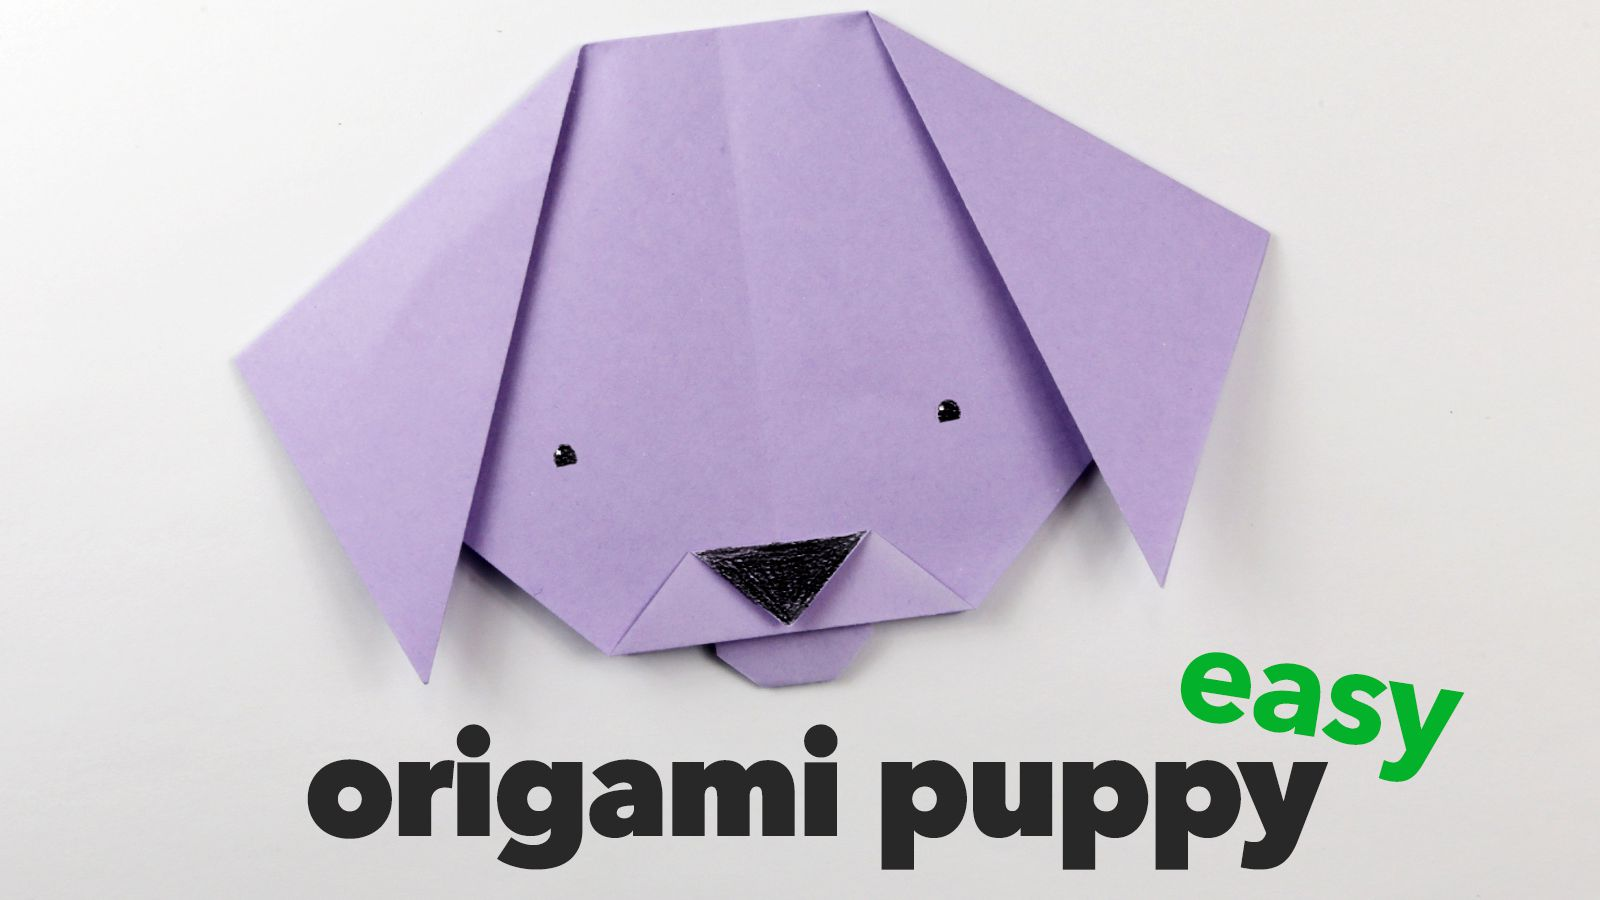 Classic Origami for Beginners Kit Ebook: 45 Easy-to-Fold Paper ... | 900x1600